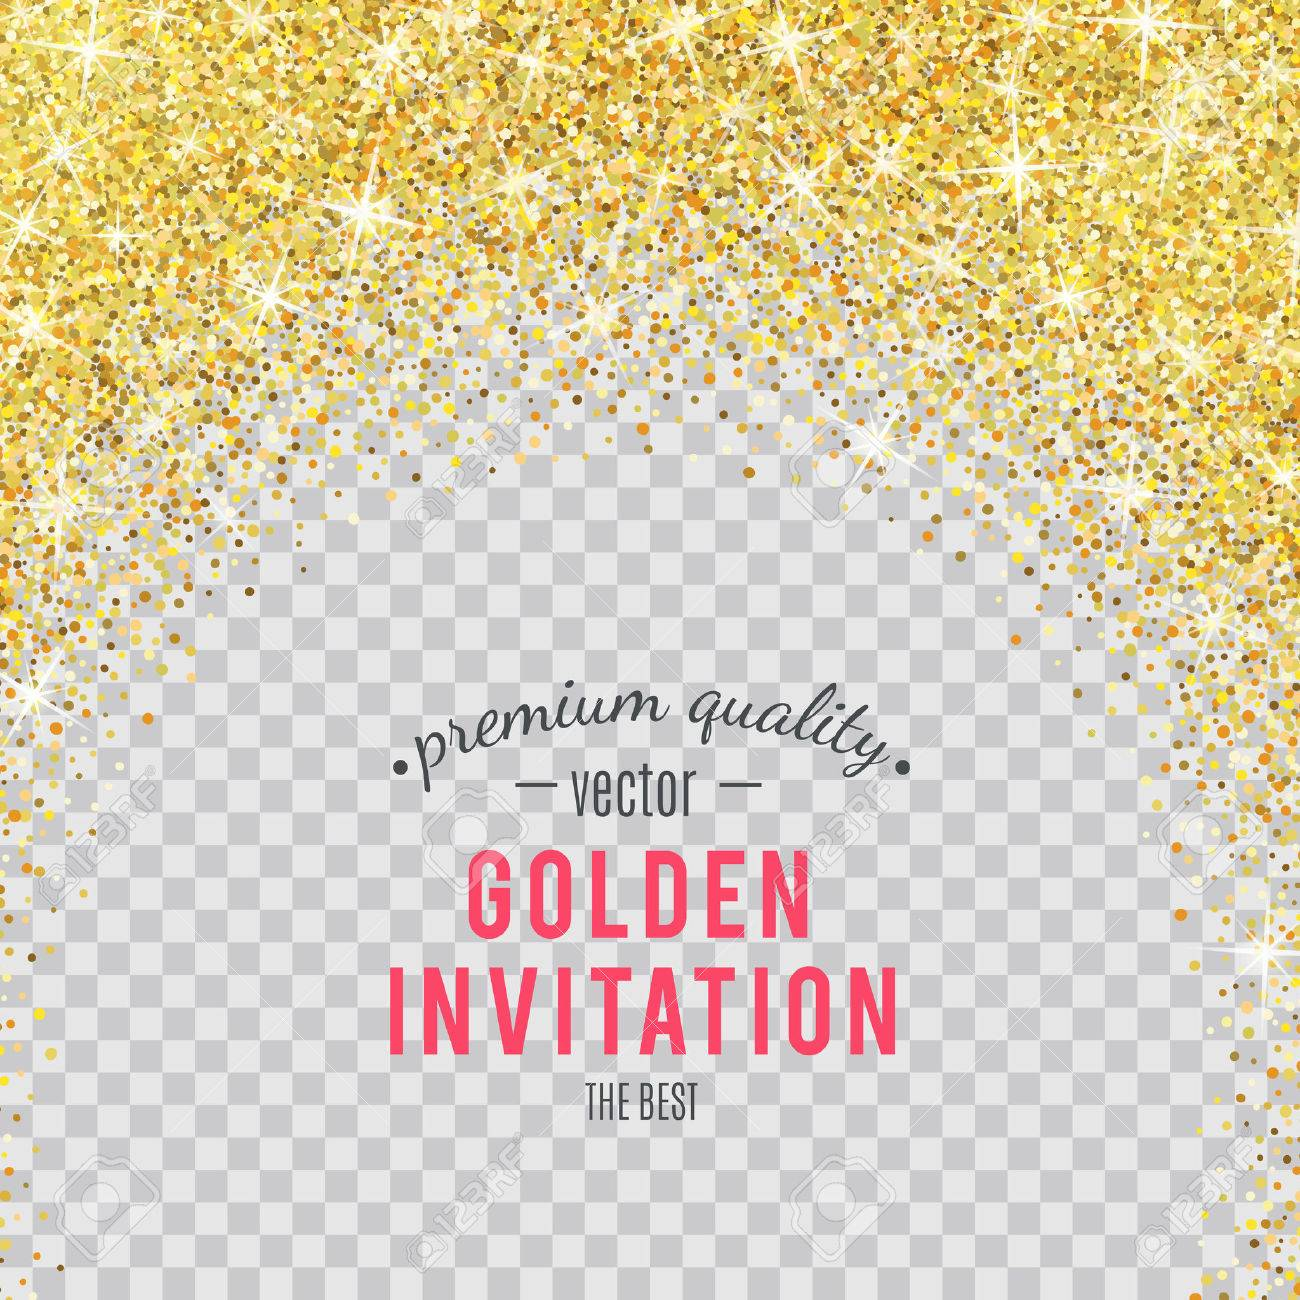 Gold glitter texture isolated on transparent background. - 53983251